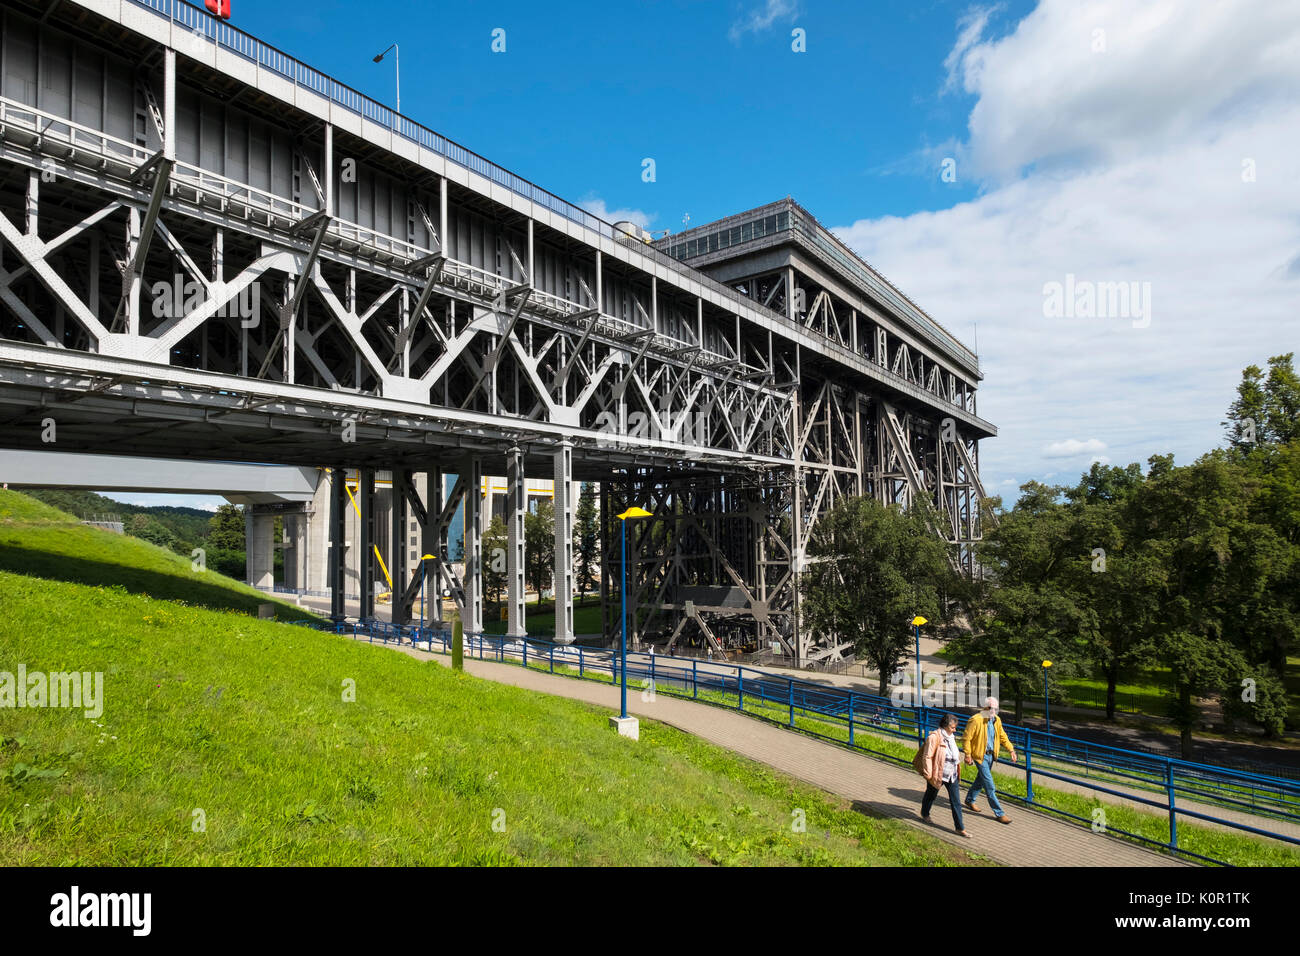 View of historic ship lift at Niederfinow in Brandenburg, Germany - Stock Image